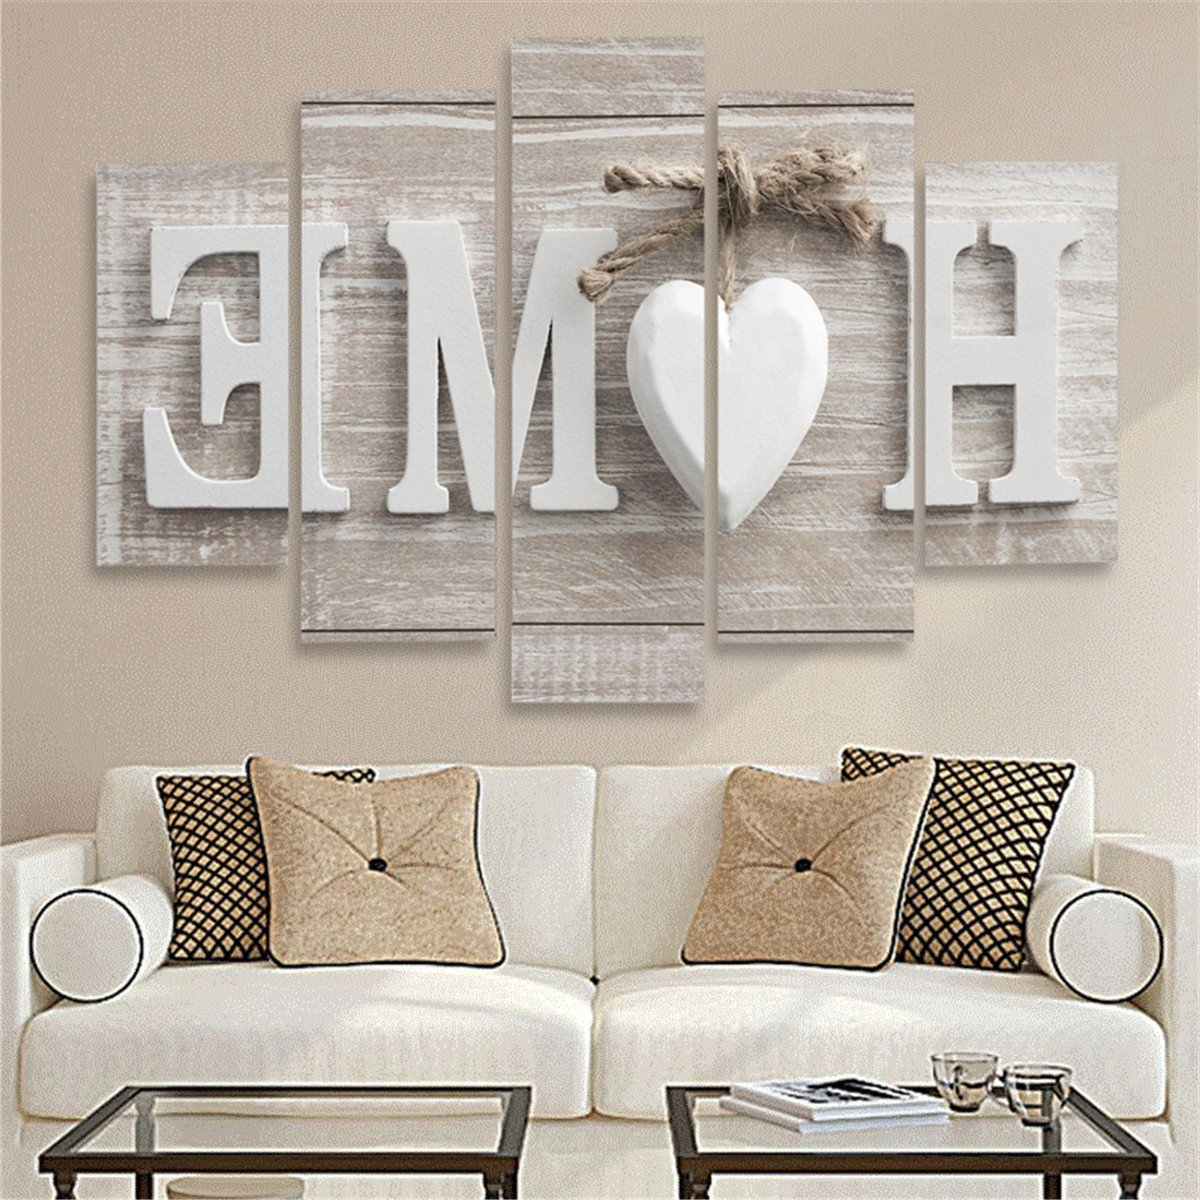 5 Panels Love Home Wall Art Print Pictures Canvas Wall Art Prints Throughout Current Home Wall Art (Gallery 1 of 15)